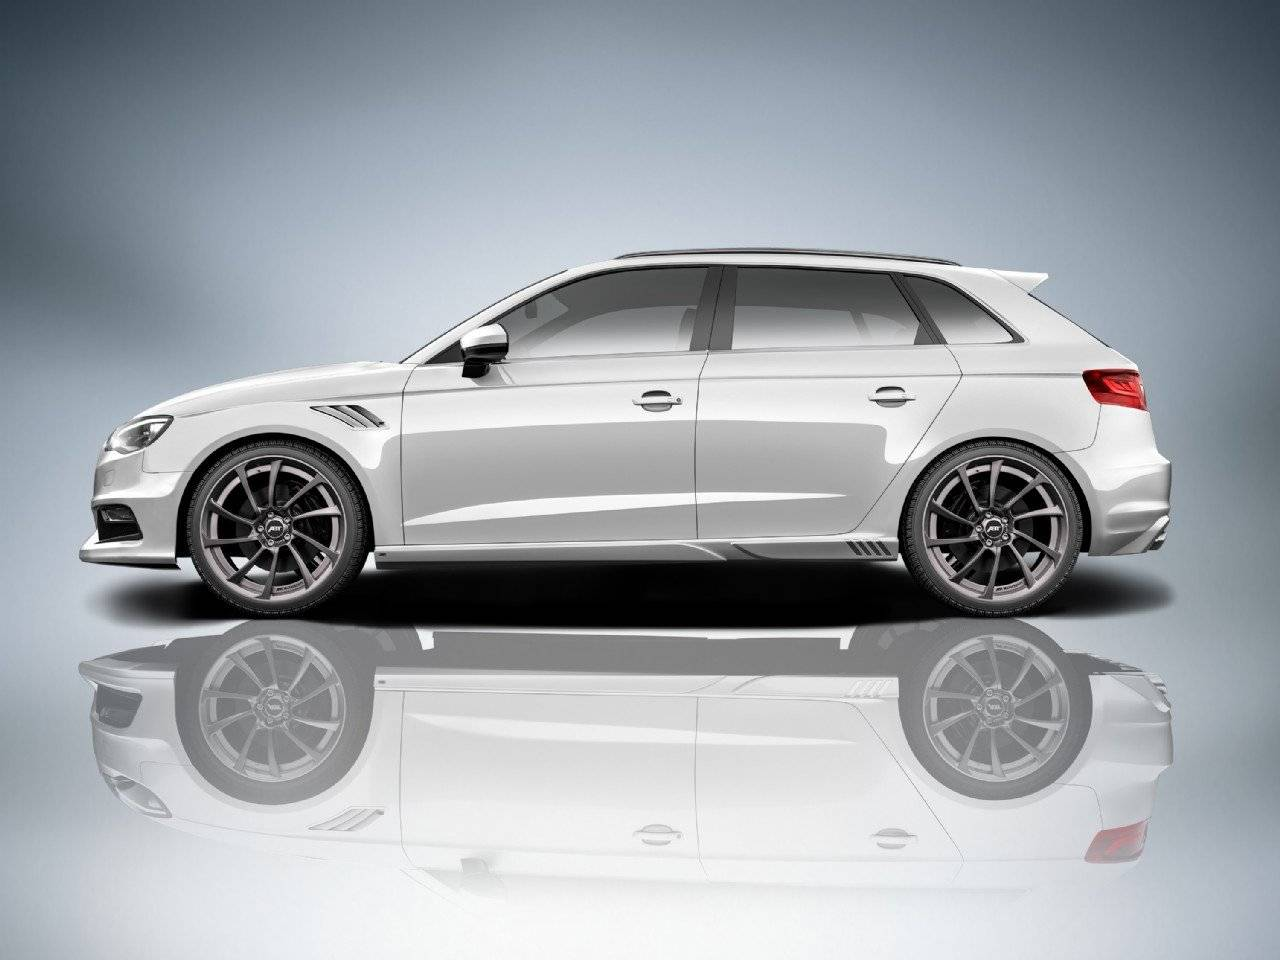 abt transformeert audi a3 sportback tot as3 tuning styling. Black Bedroom Furniture Sets. Home Design Ideas